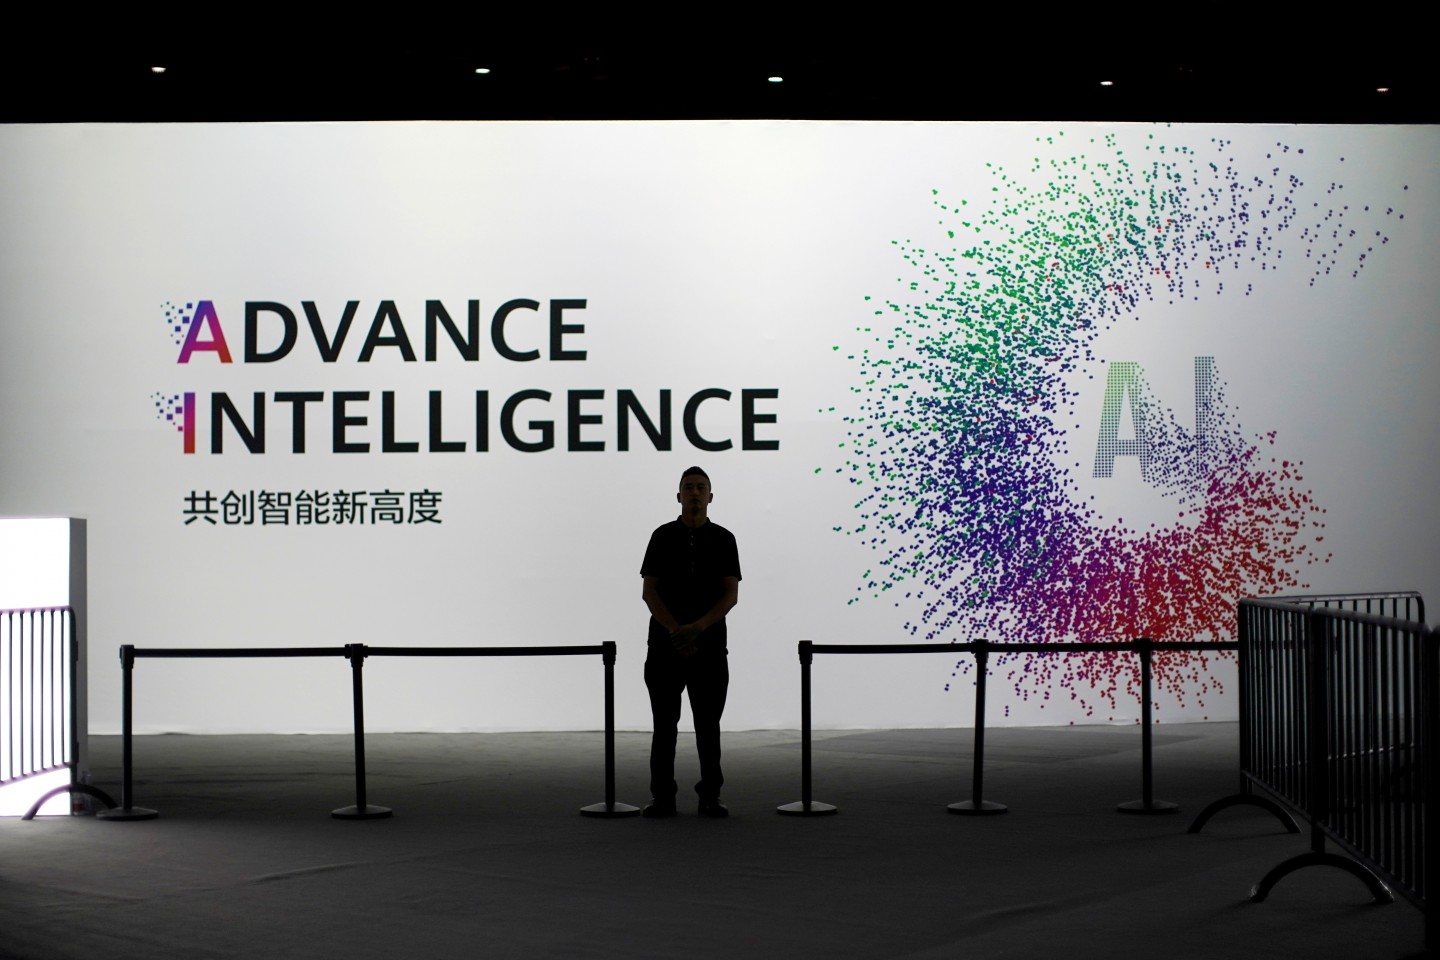 Beijing has made funding commitments of US$300 billion over ten years, earmarked for semiconductors, AI, robotics and other key industries of the future. This file photo was taken at the annual Huawei Connect event in Shanghai, China September 18, 2019. (Aly Song/File Photo/Reuters)